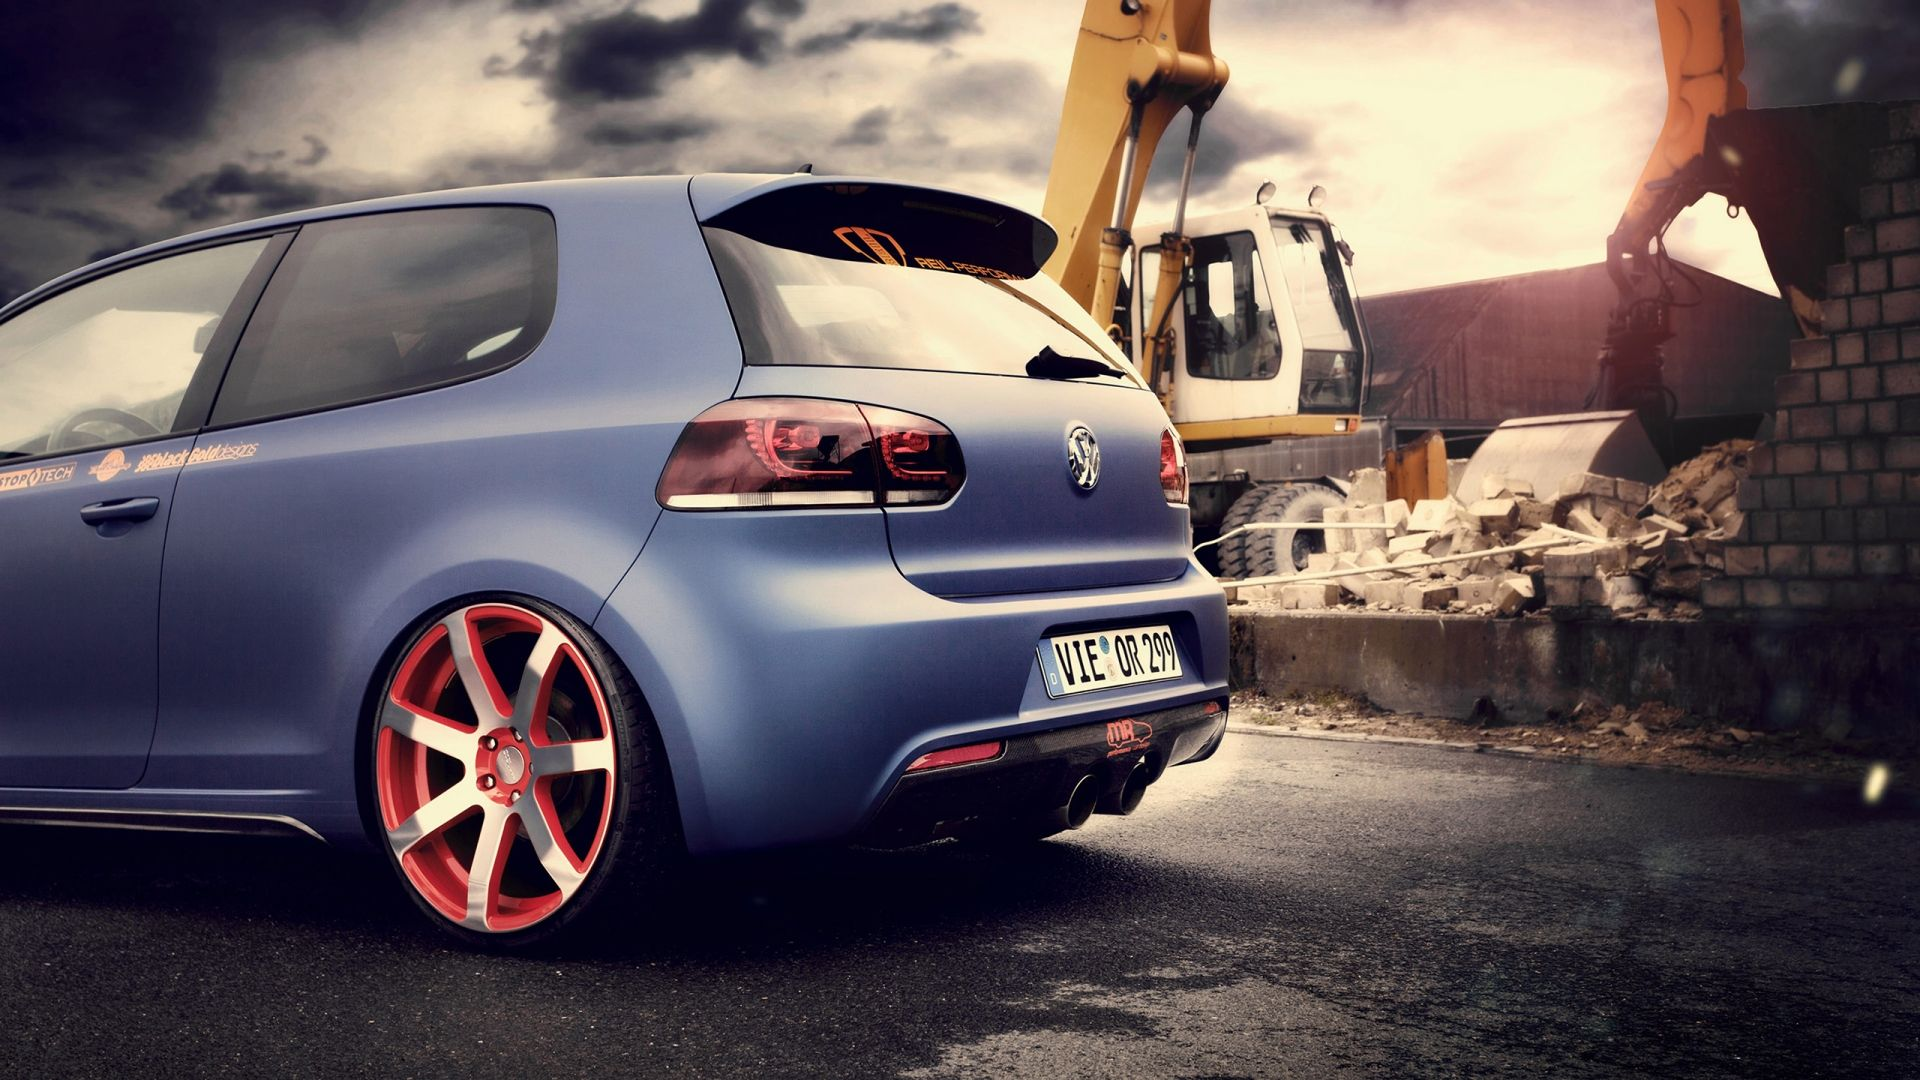 volkswagen golf wallpaper | das vw polo/golf | pinterest